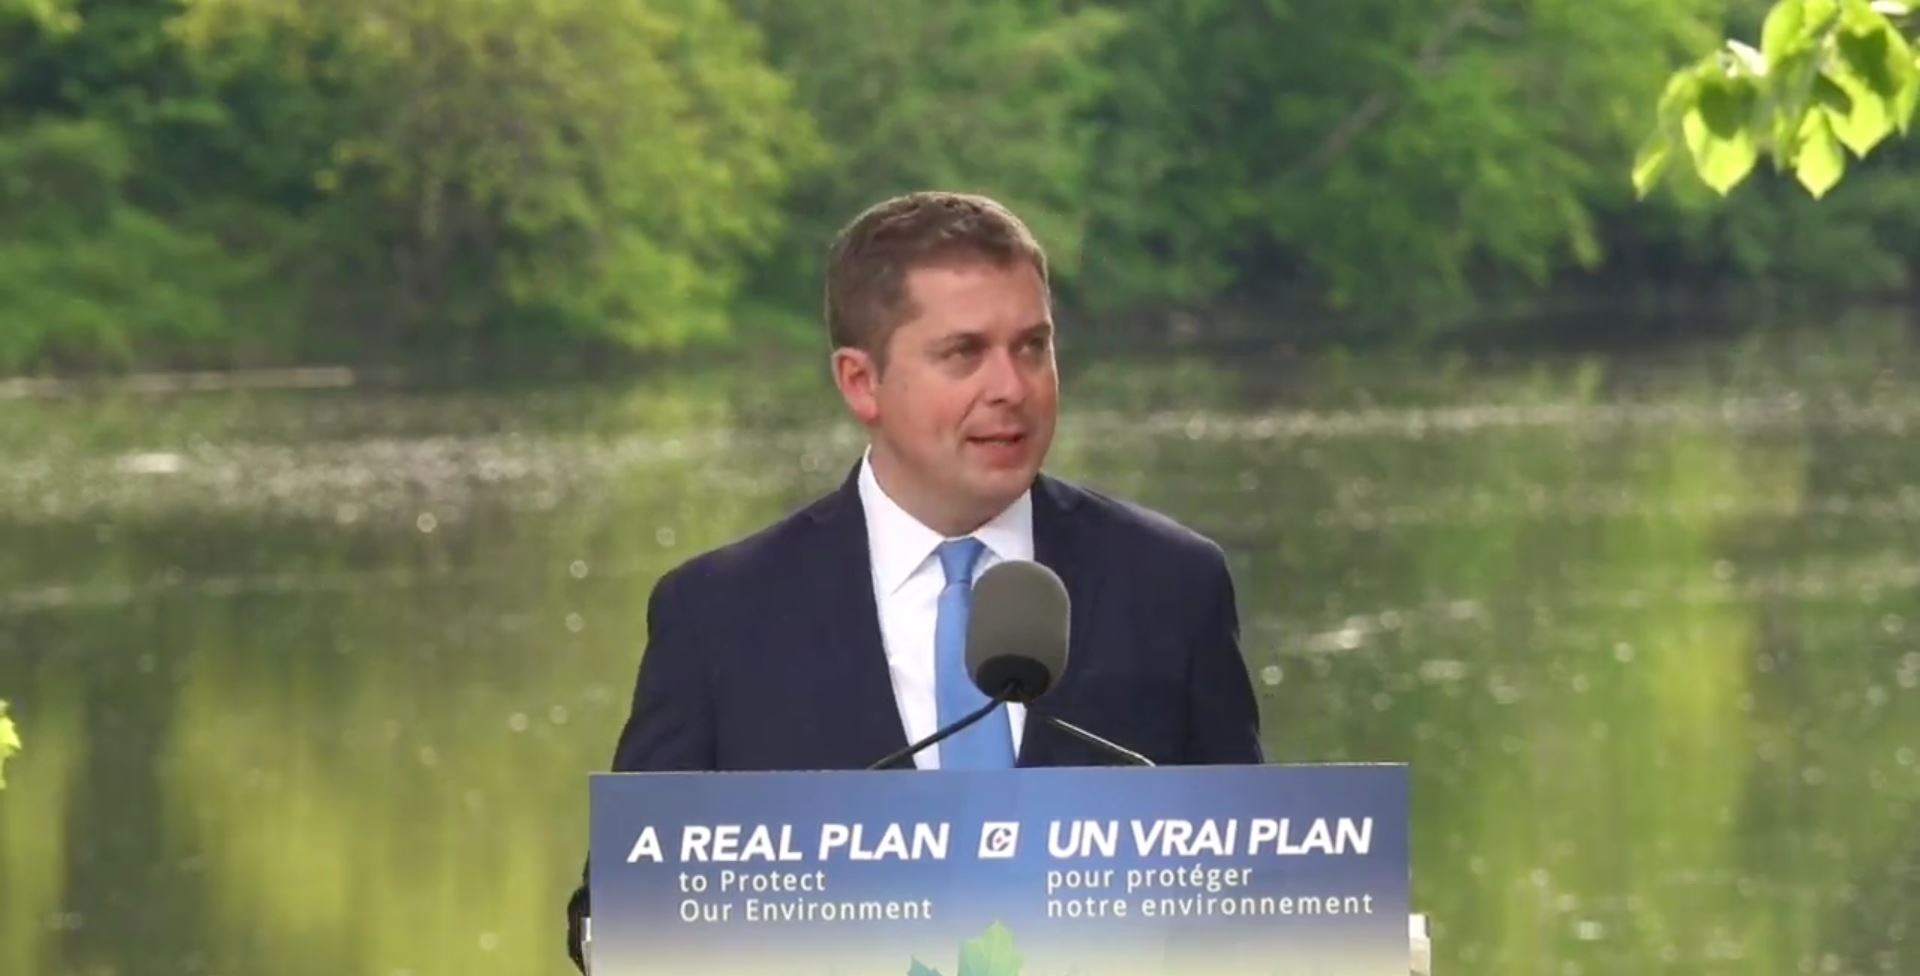 Andrew Sheer, Conservative Leader, revealing Conservative's plan for the Environment.